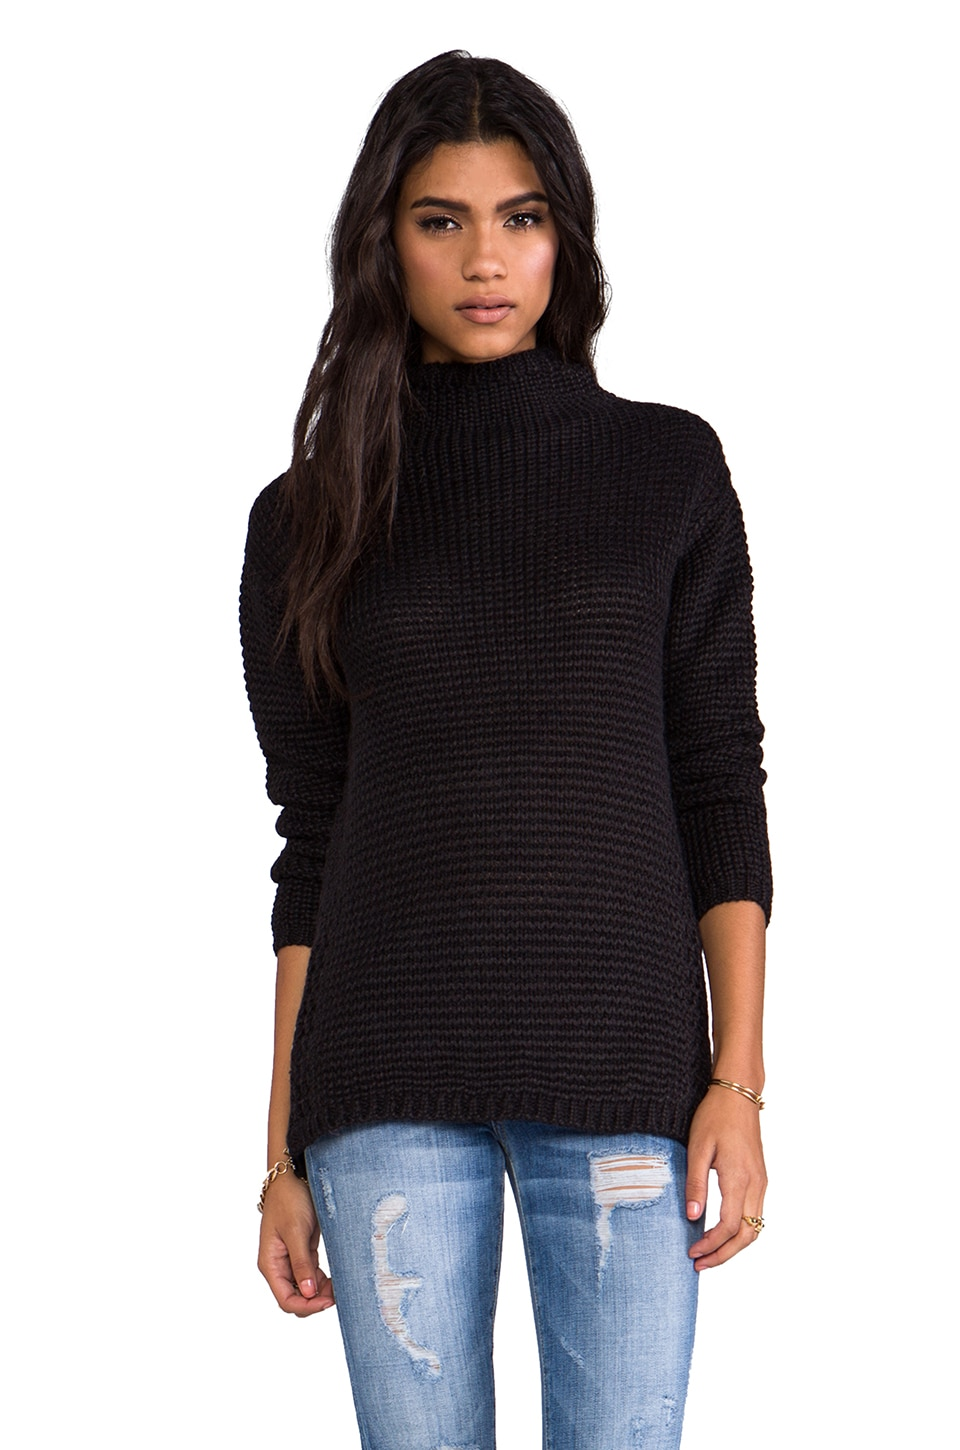 Maison Scotch Knitted Funnel Neck Sweater in Black